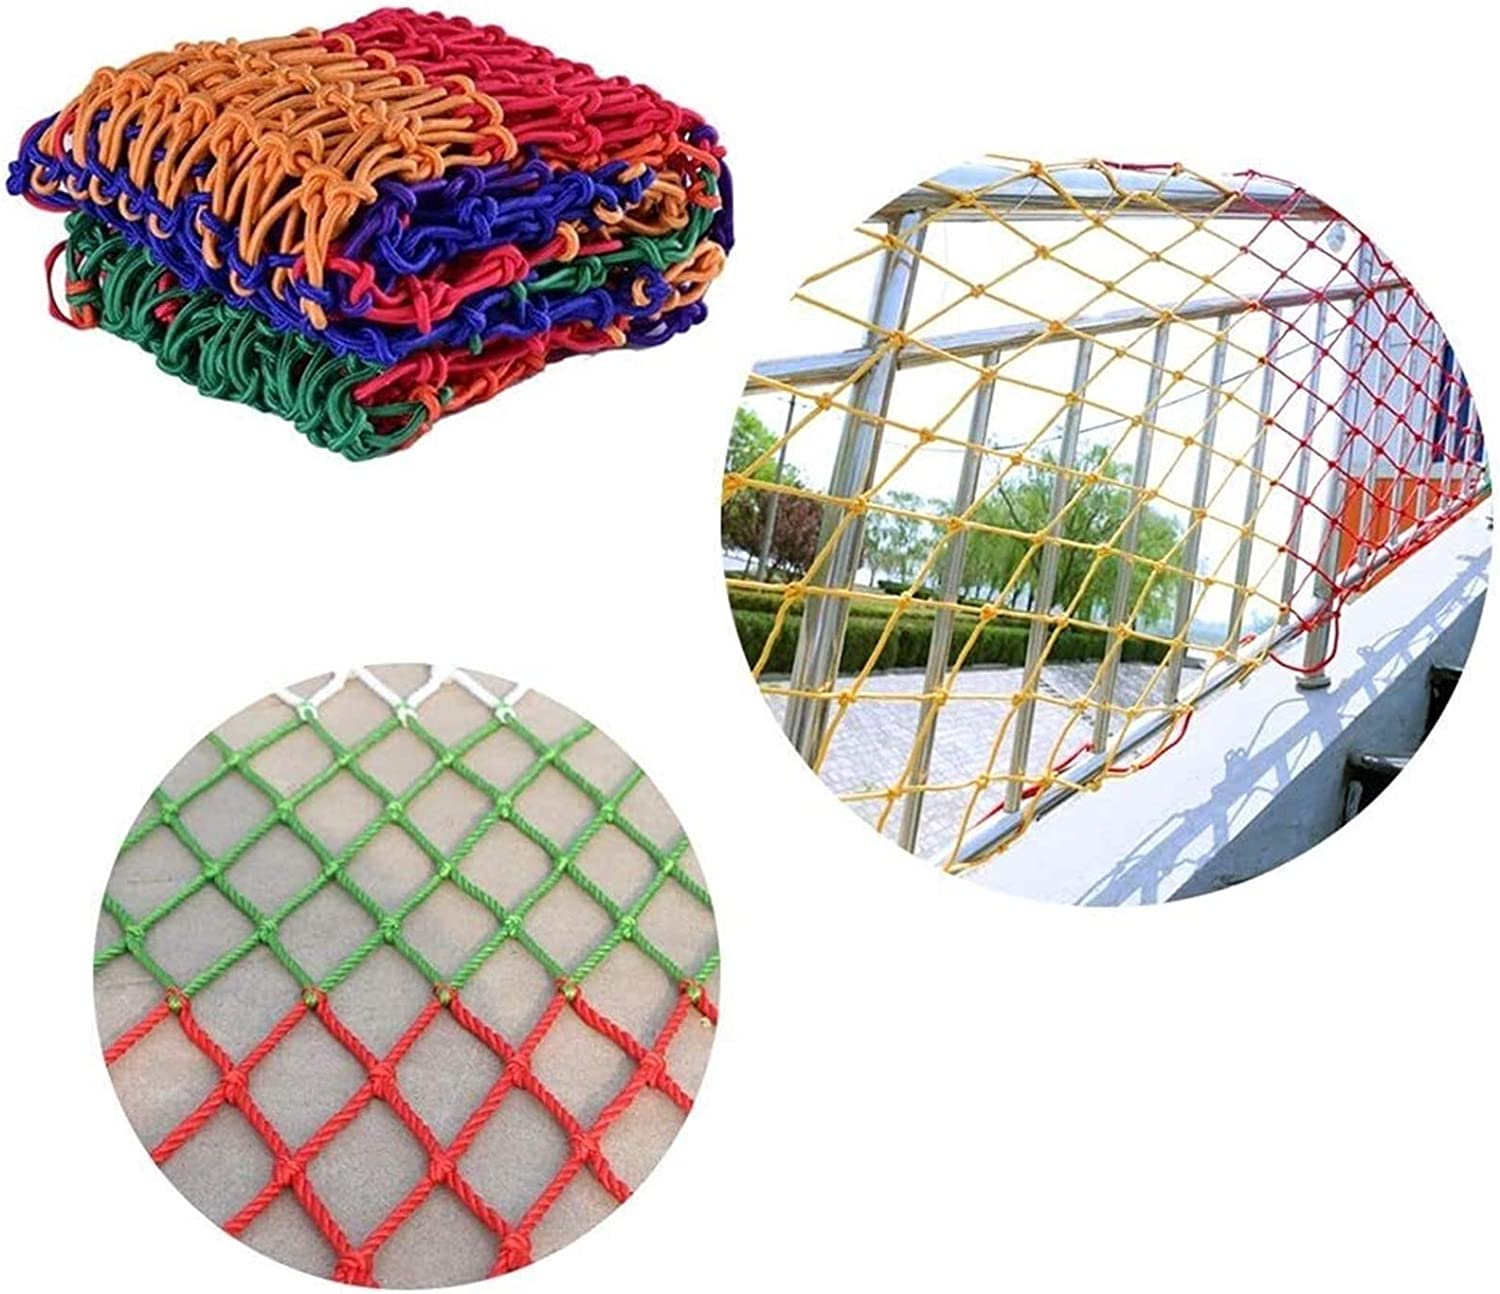 MBTY Max 81% OFF Balcony Protection Net Railing Decor Color Gard Safety Excellent